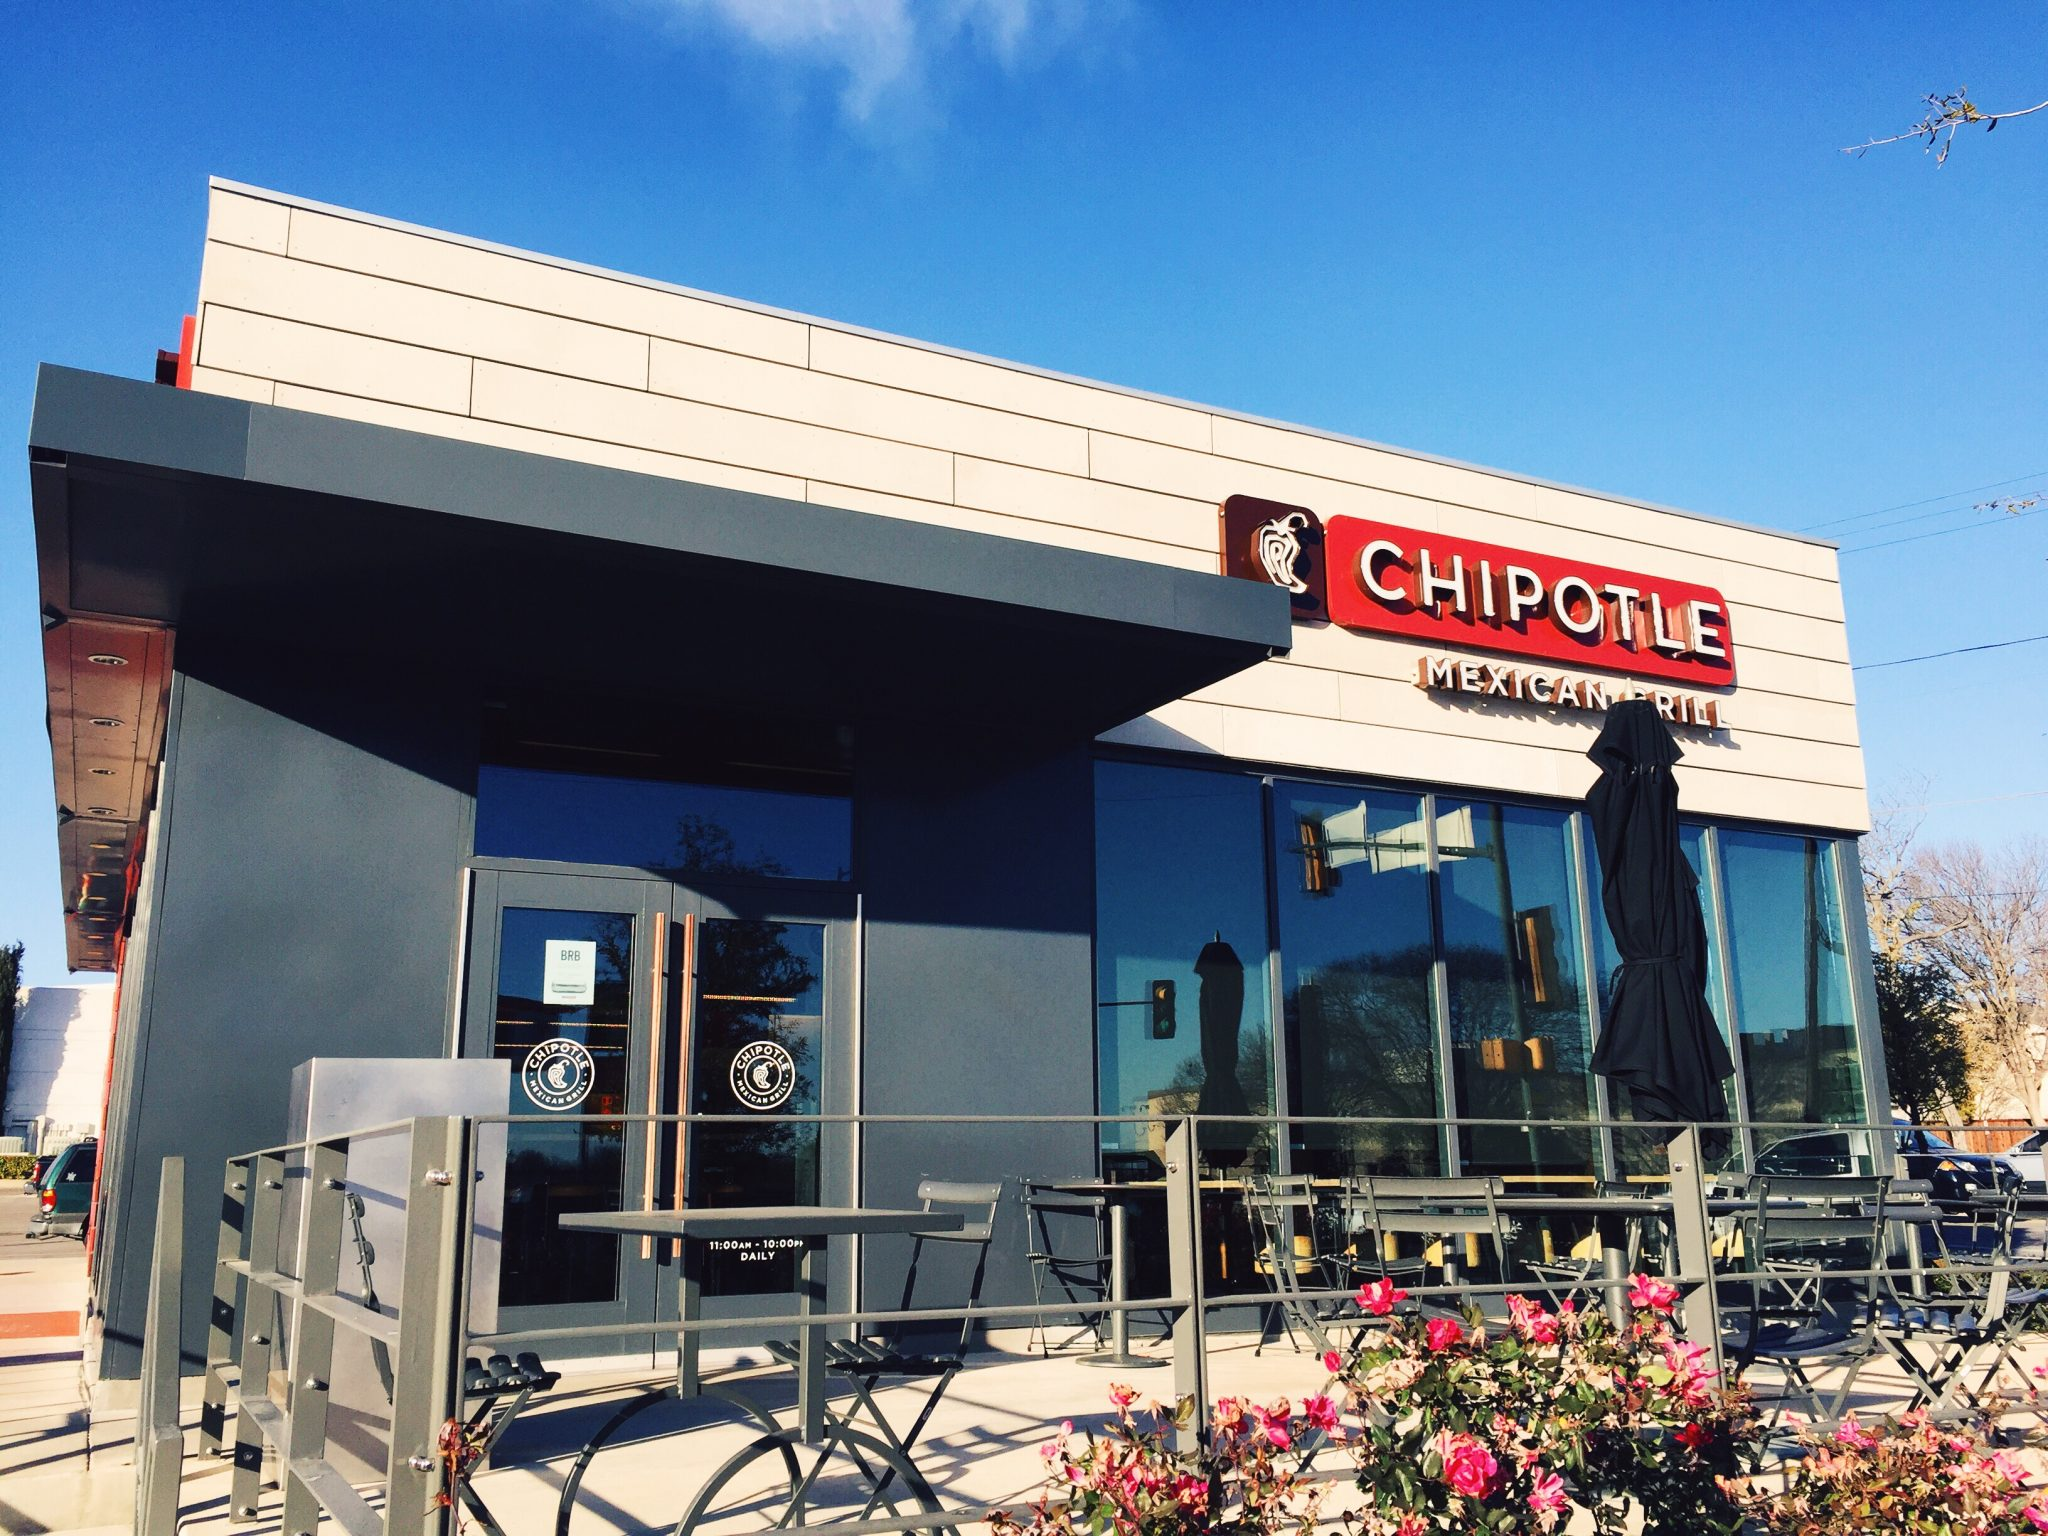 Chipotle (photo by Brittany Nunn)